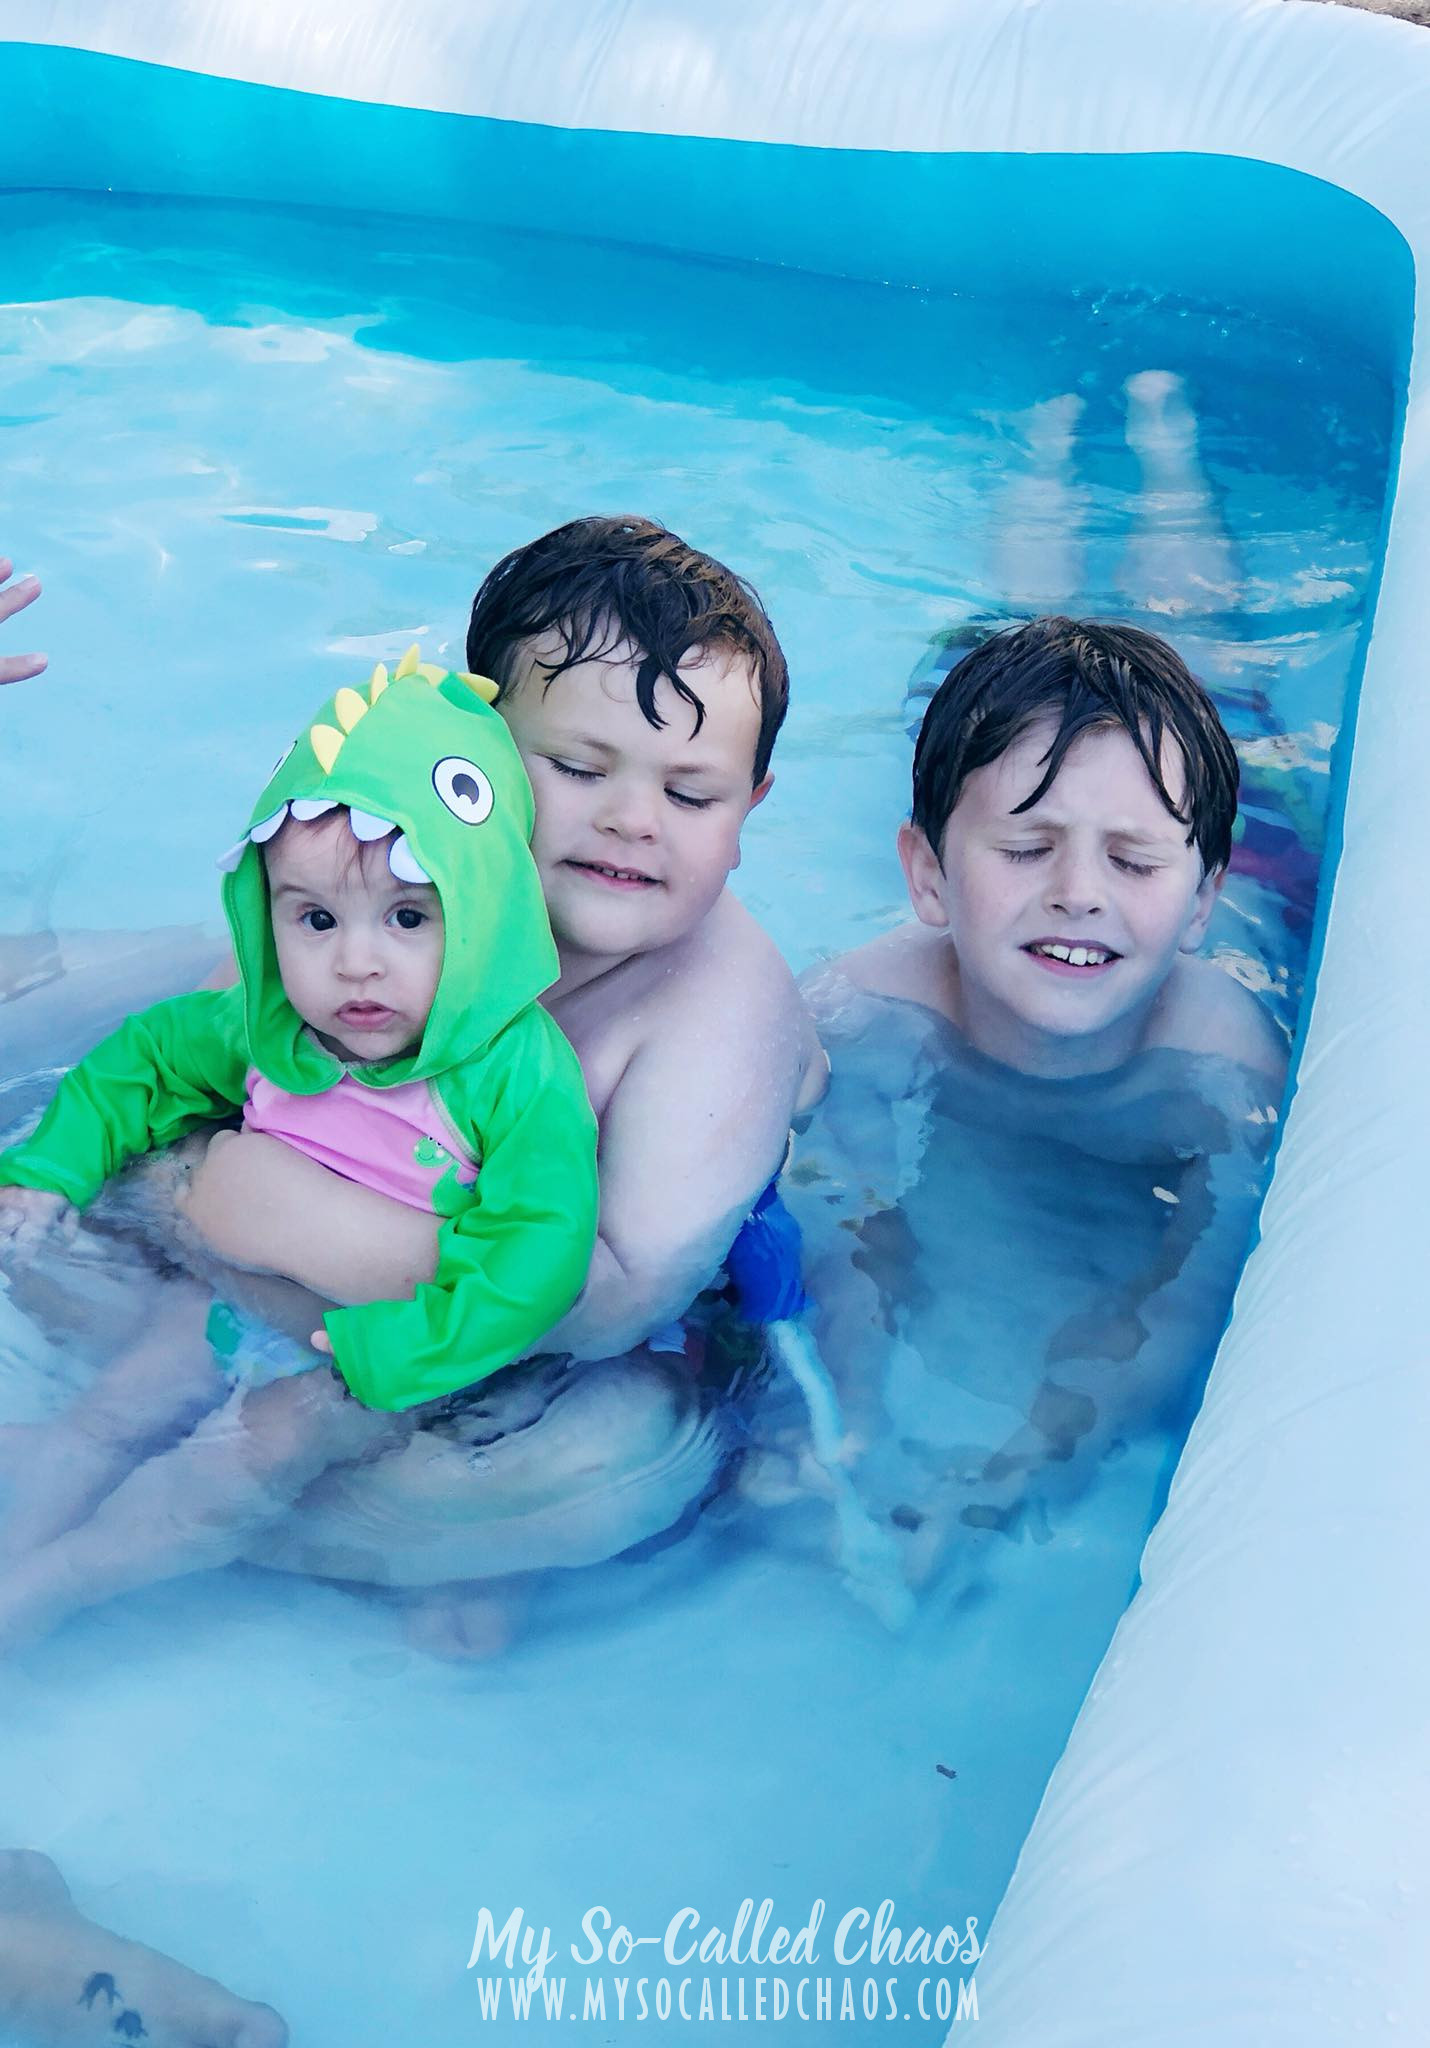 Two boys holding their baby sister in a dinosaur swimsuit and rashguard while swimming in a blow up pool.